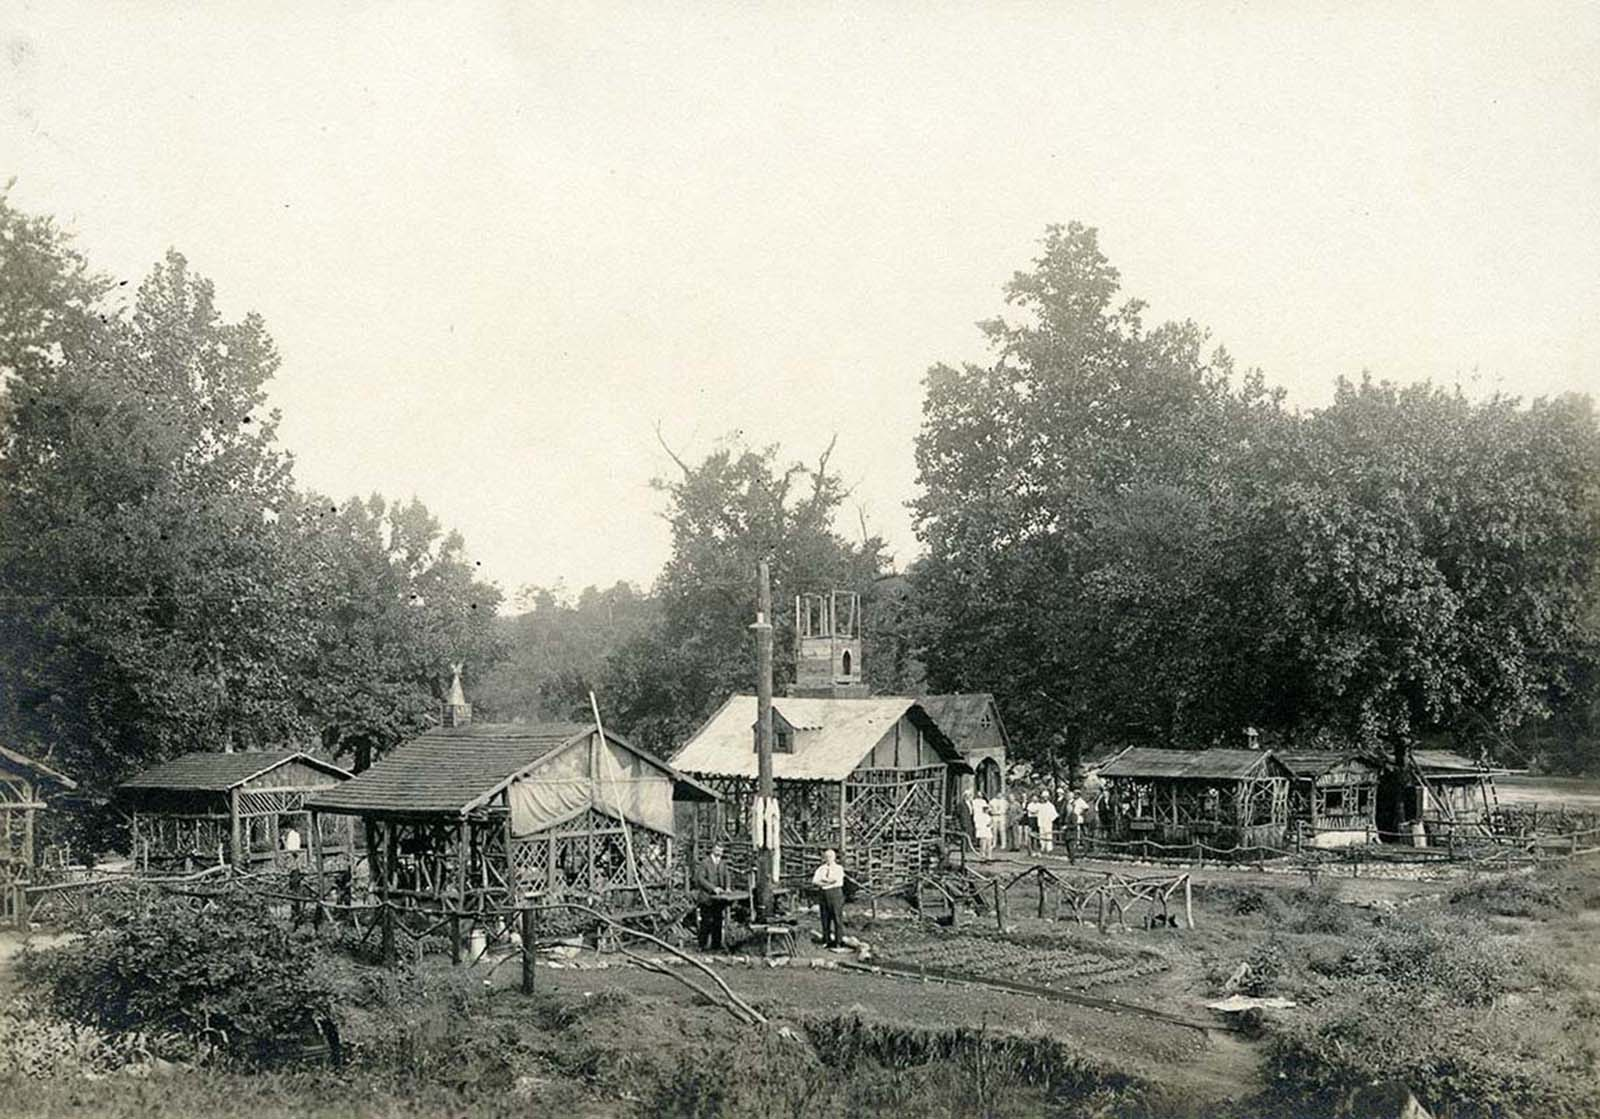 View of houses, gardens, a partially- constructed church, and German campers posing for a photograph in the German internment camp.